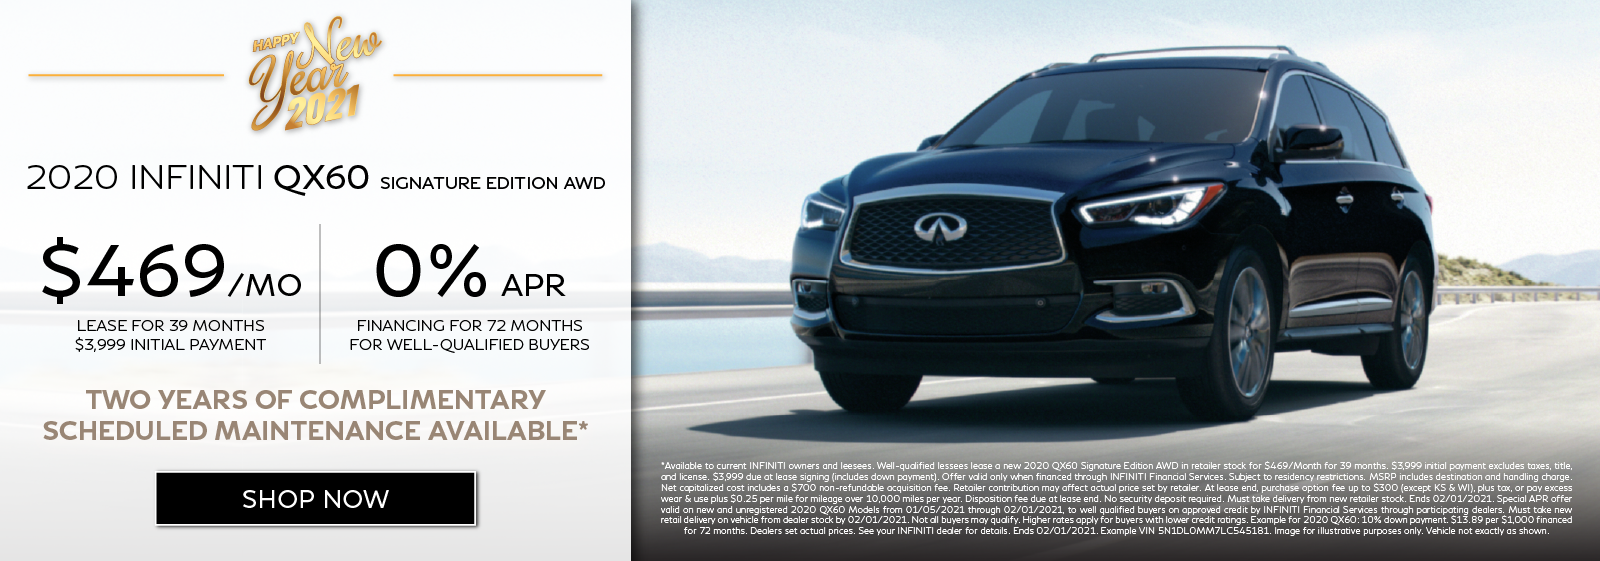 Well-qualified customers can lease a new 2020 QX60 SIGNATURE EDITION AWD for $469 per month for 39 months OR get 0% APR financing for 72 months plus get two years of complimentary scheduled maintenance.* Click to shop now.